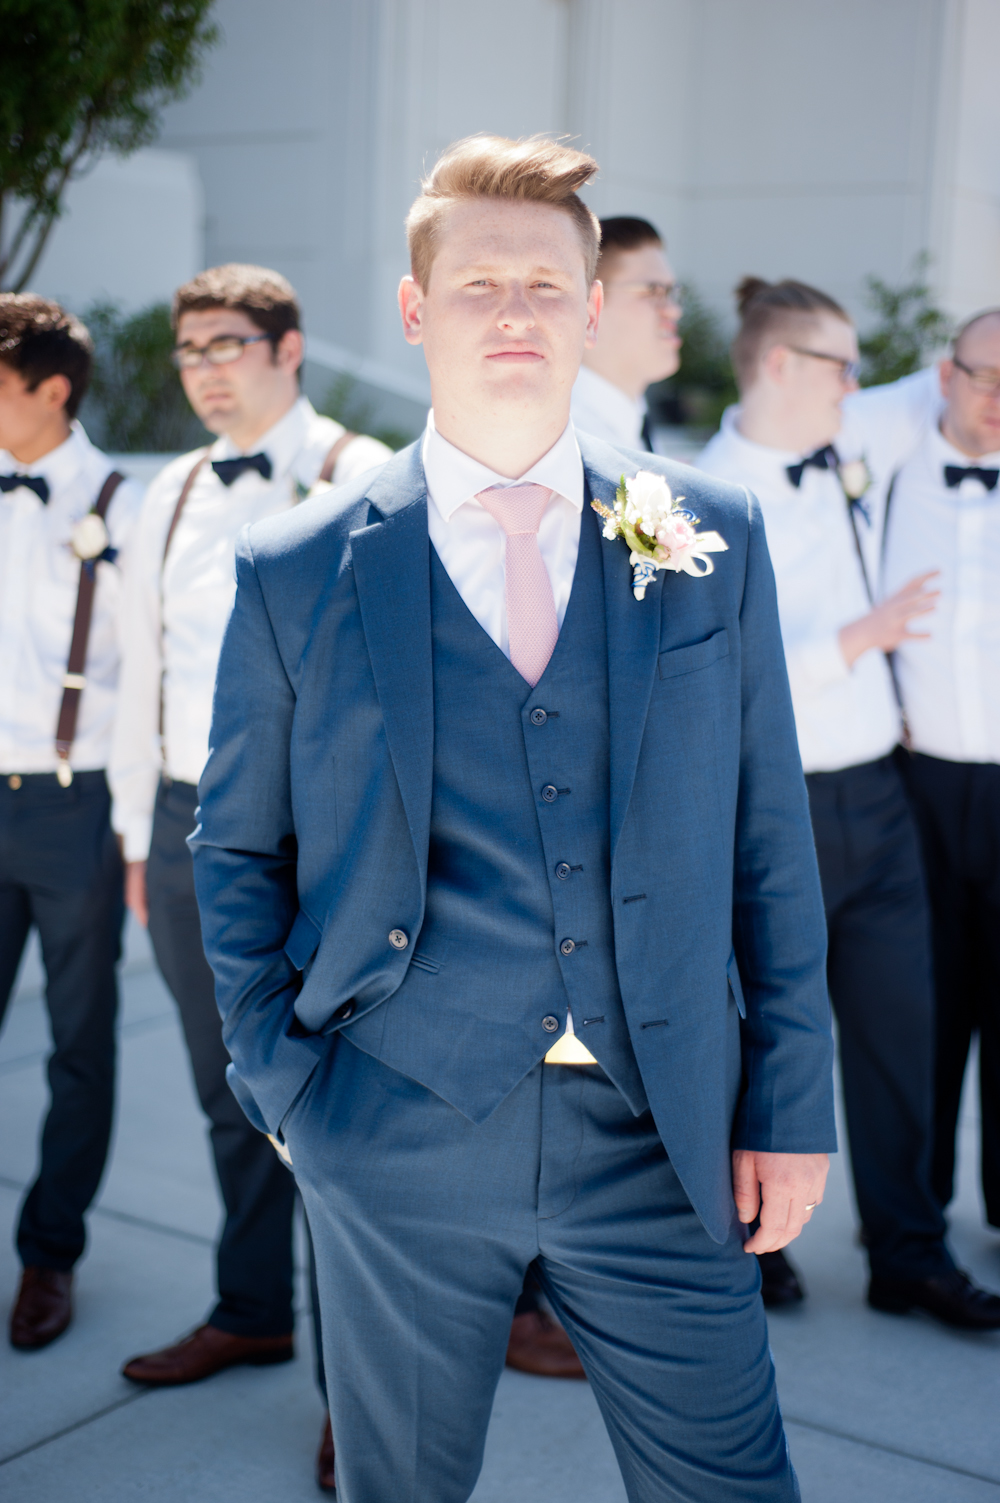 cool Groom in front of his groomsmen